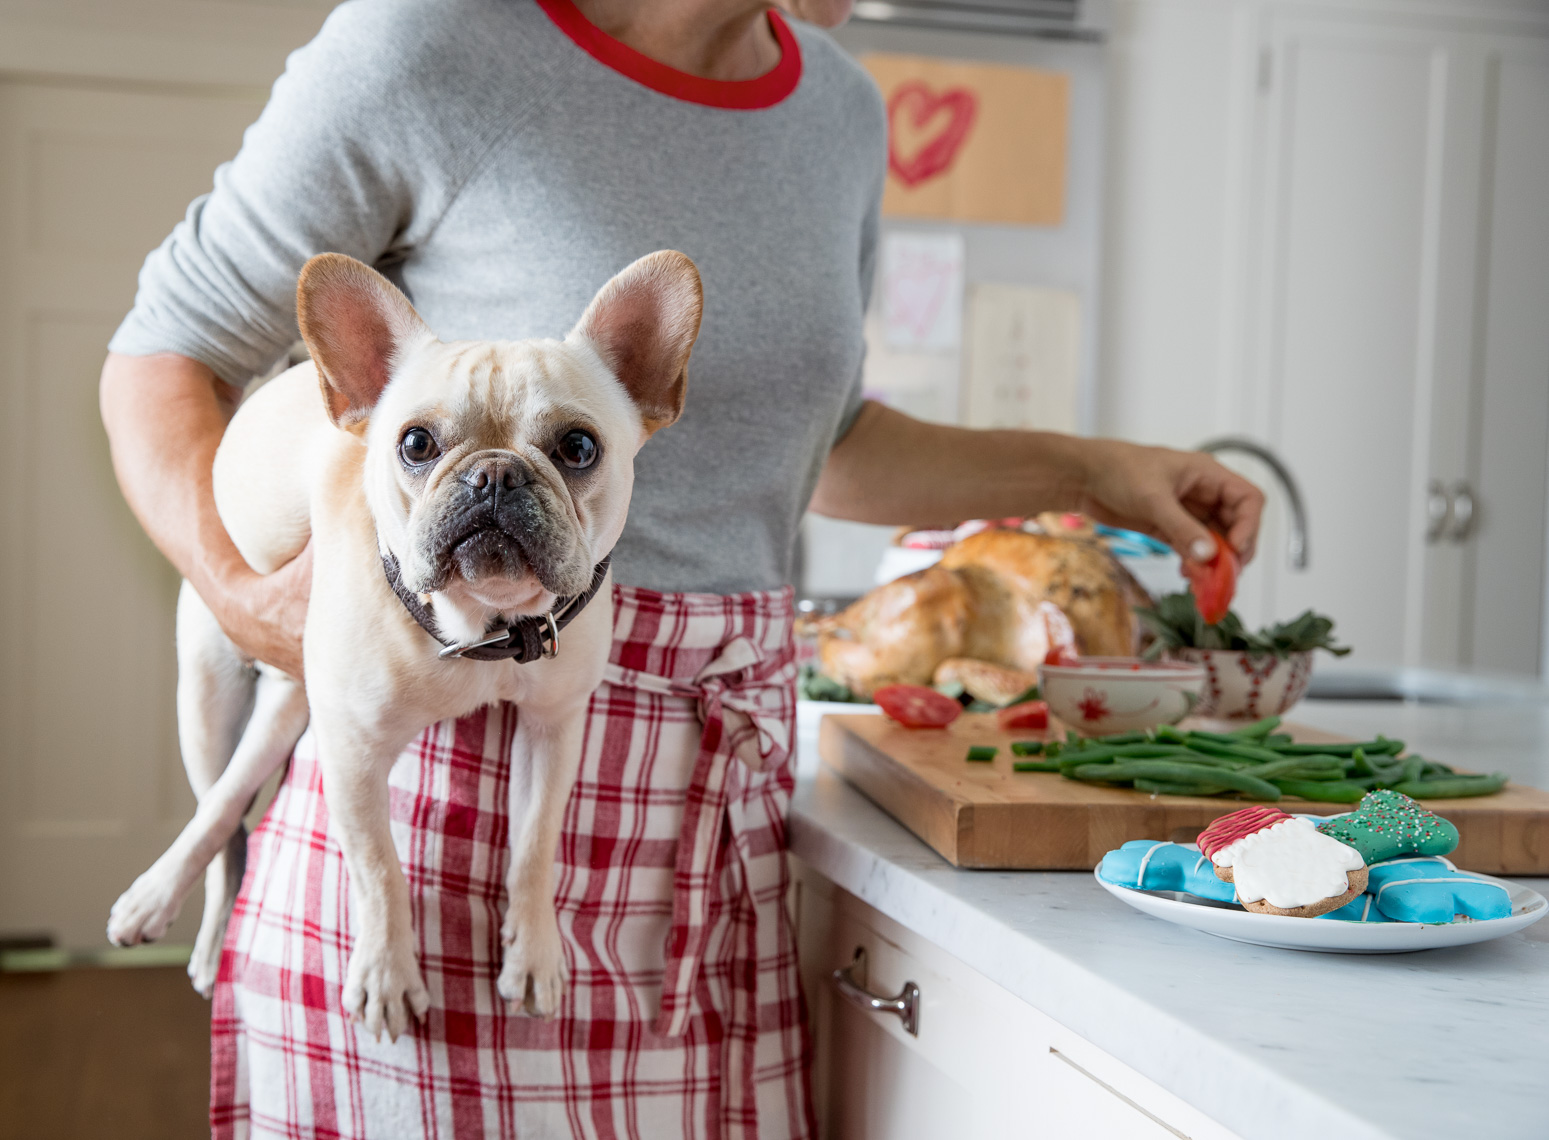 P87_SR100589_PS_20160908_Holiday-Dog-Feasting-1_08683